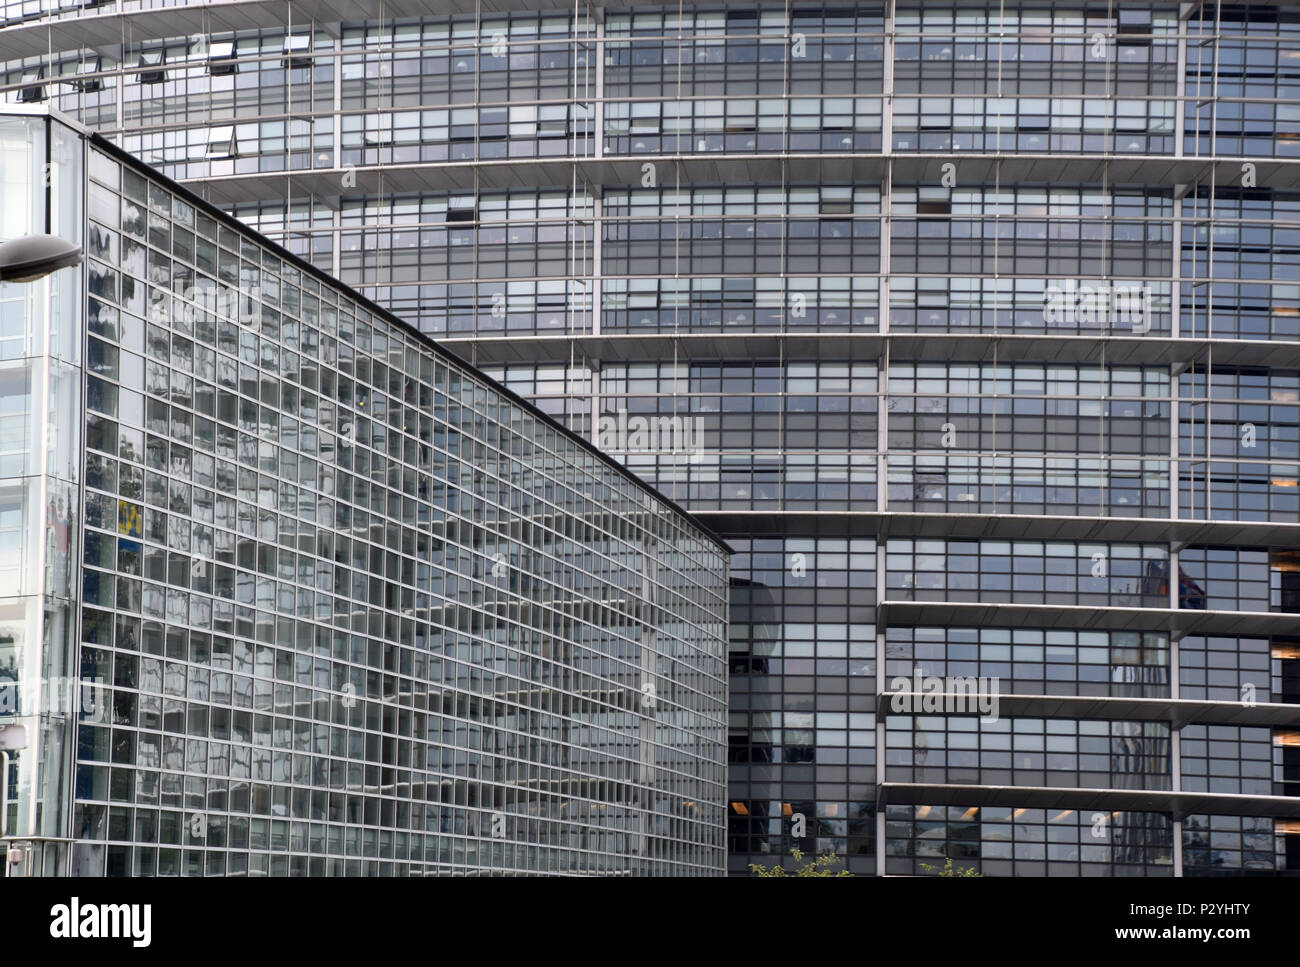 STRASBOURG, BR, FRANCE - JUNE 13, 2018: European Parliament in Strasbourg under overcast sky, big glass facade of the Parliament of the EU - Stock Image